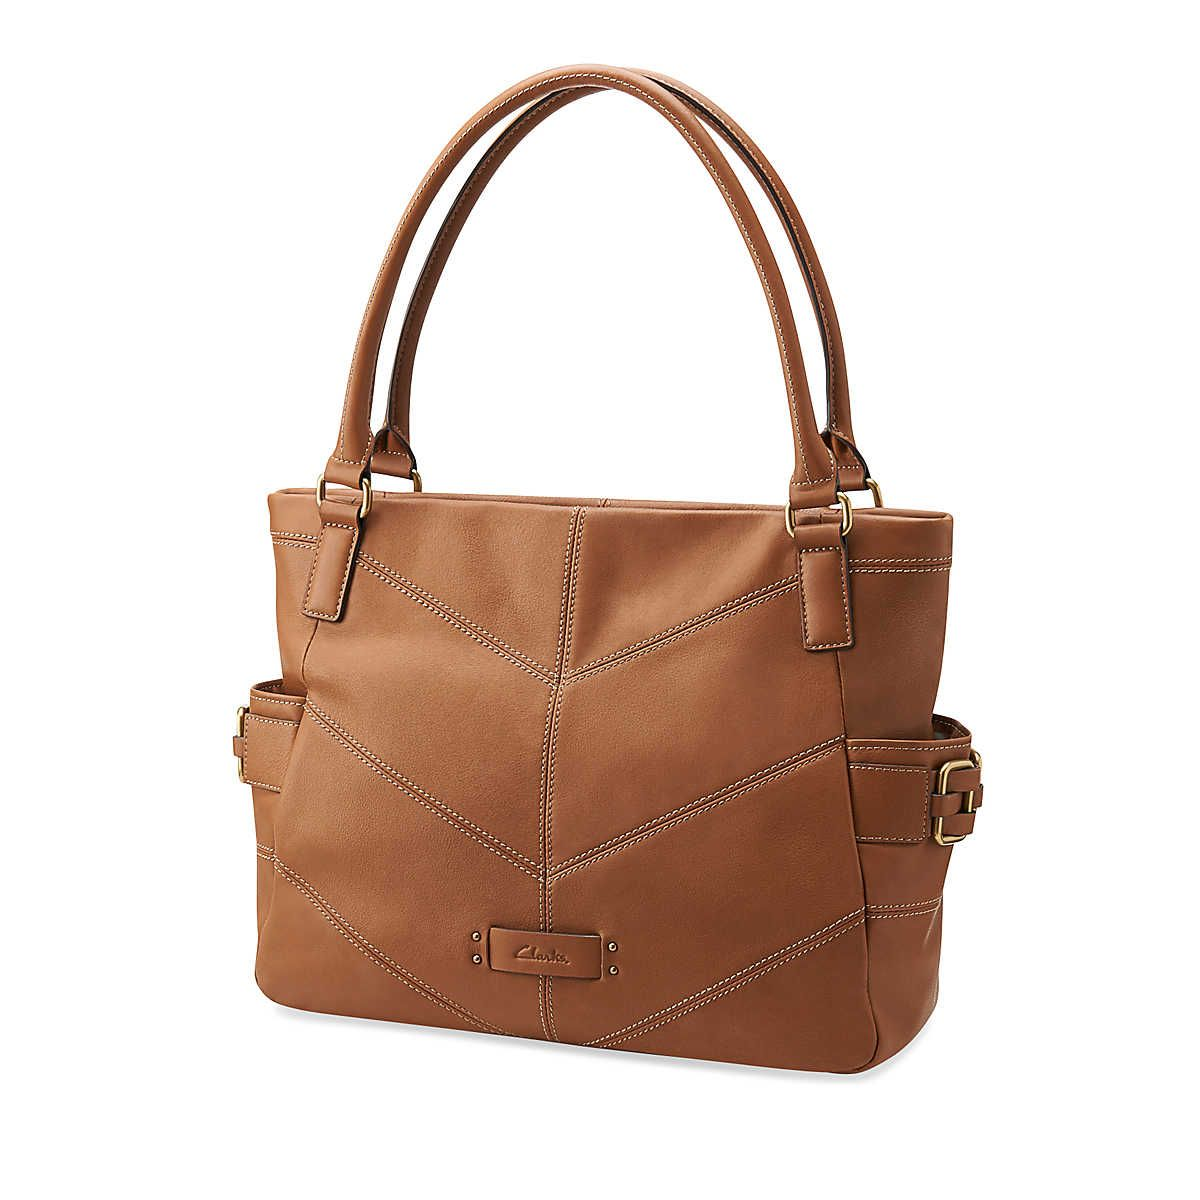 Geo Satchel in Cognac - Accessories Womens from Clarks (comes in a multi color in store that is awesome.)